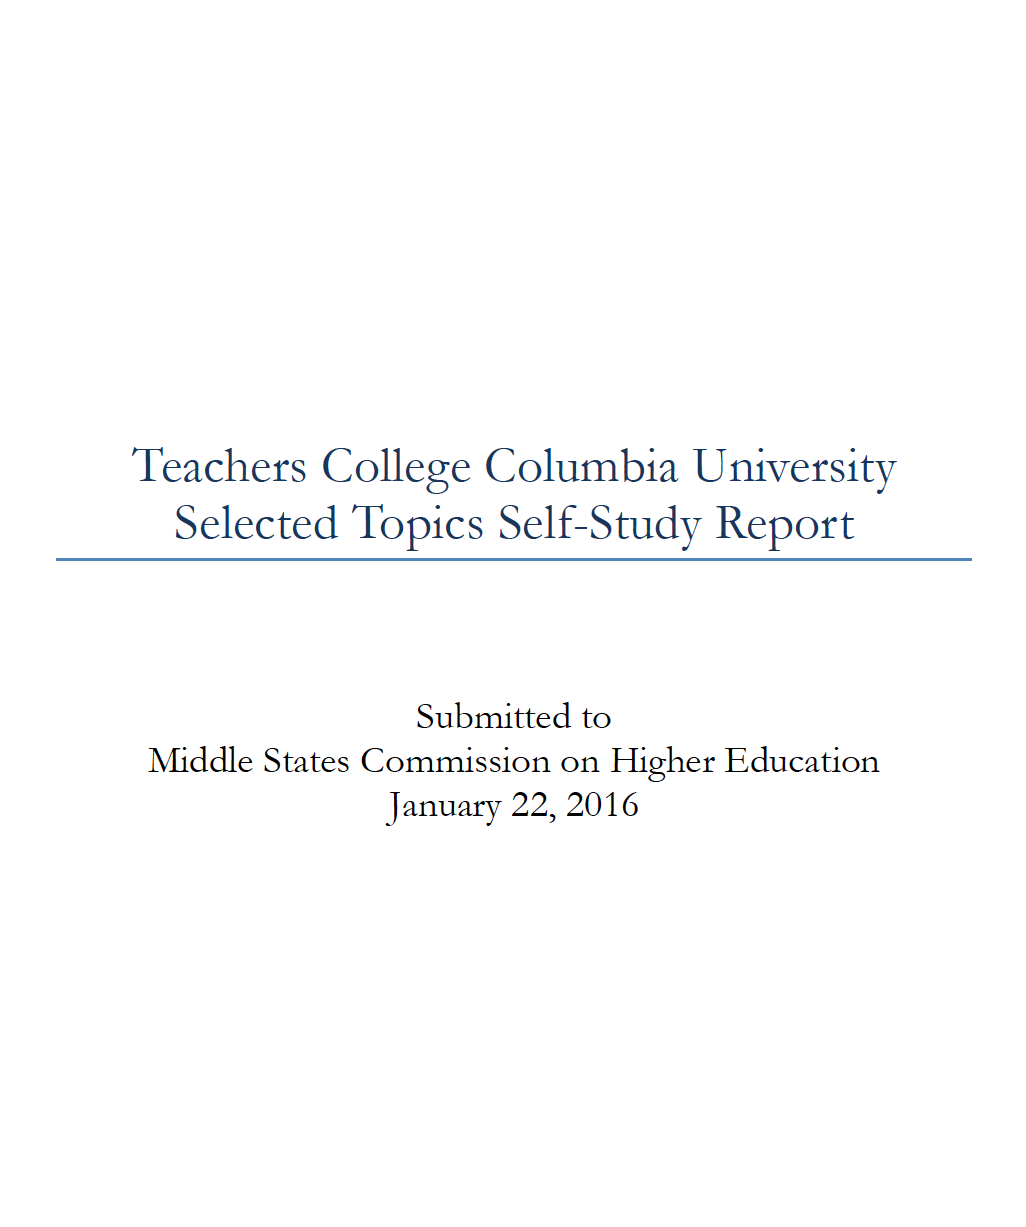 2016 Teachers College Columbia University Selected Topics Self-Study Report